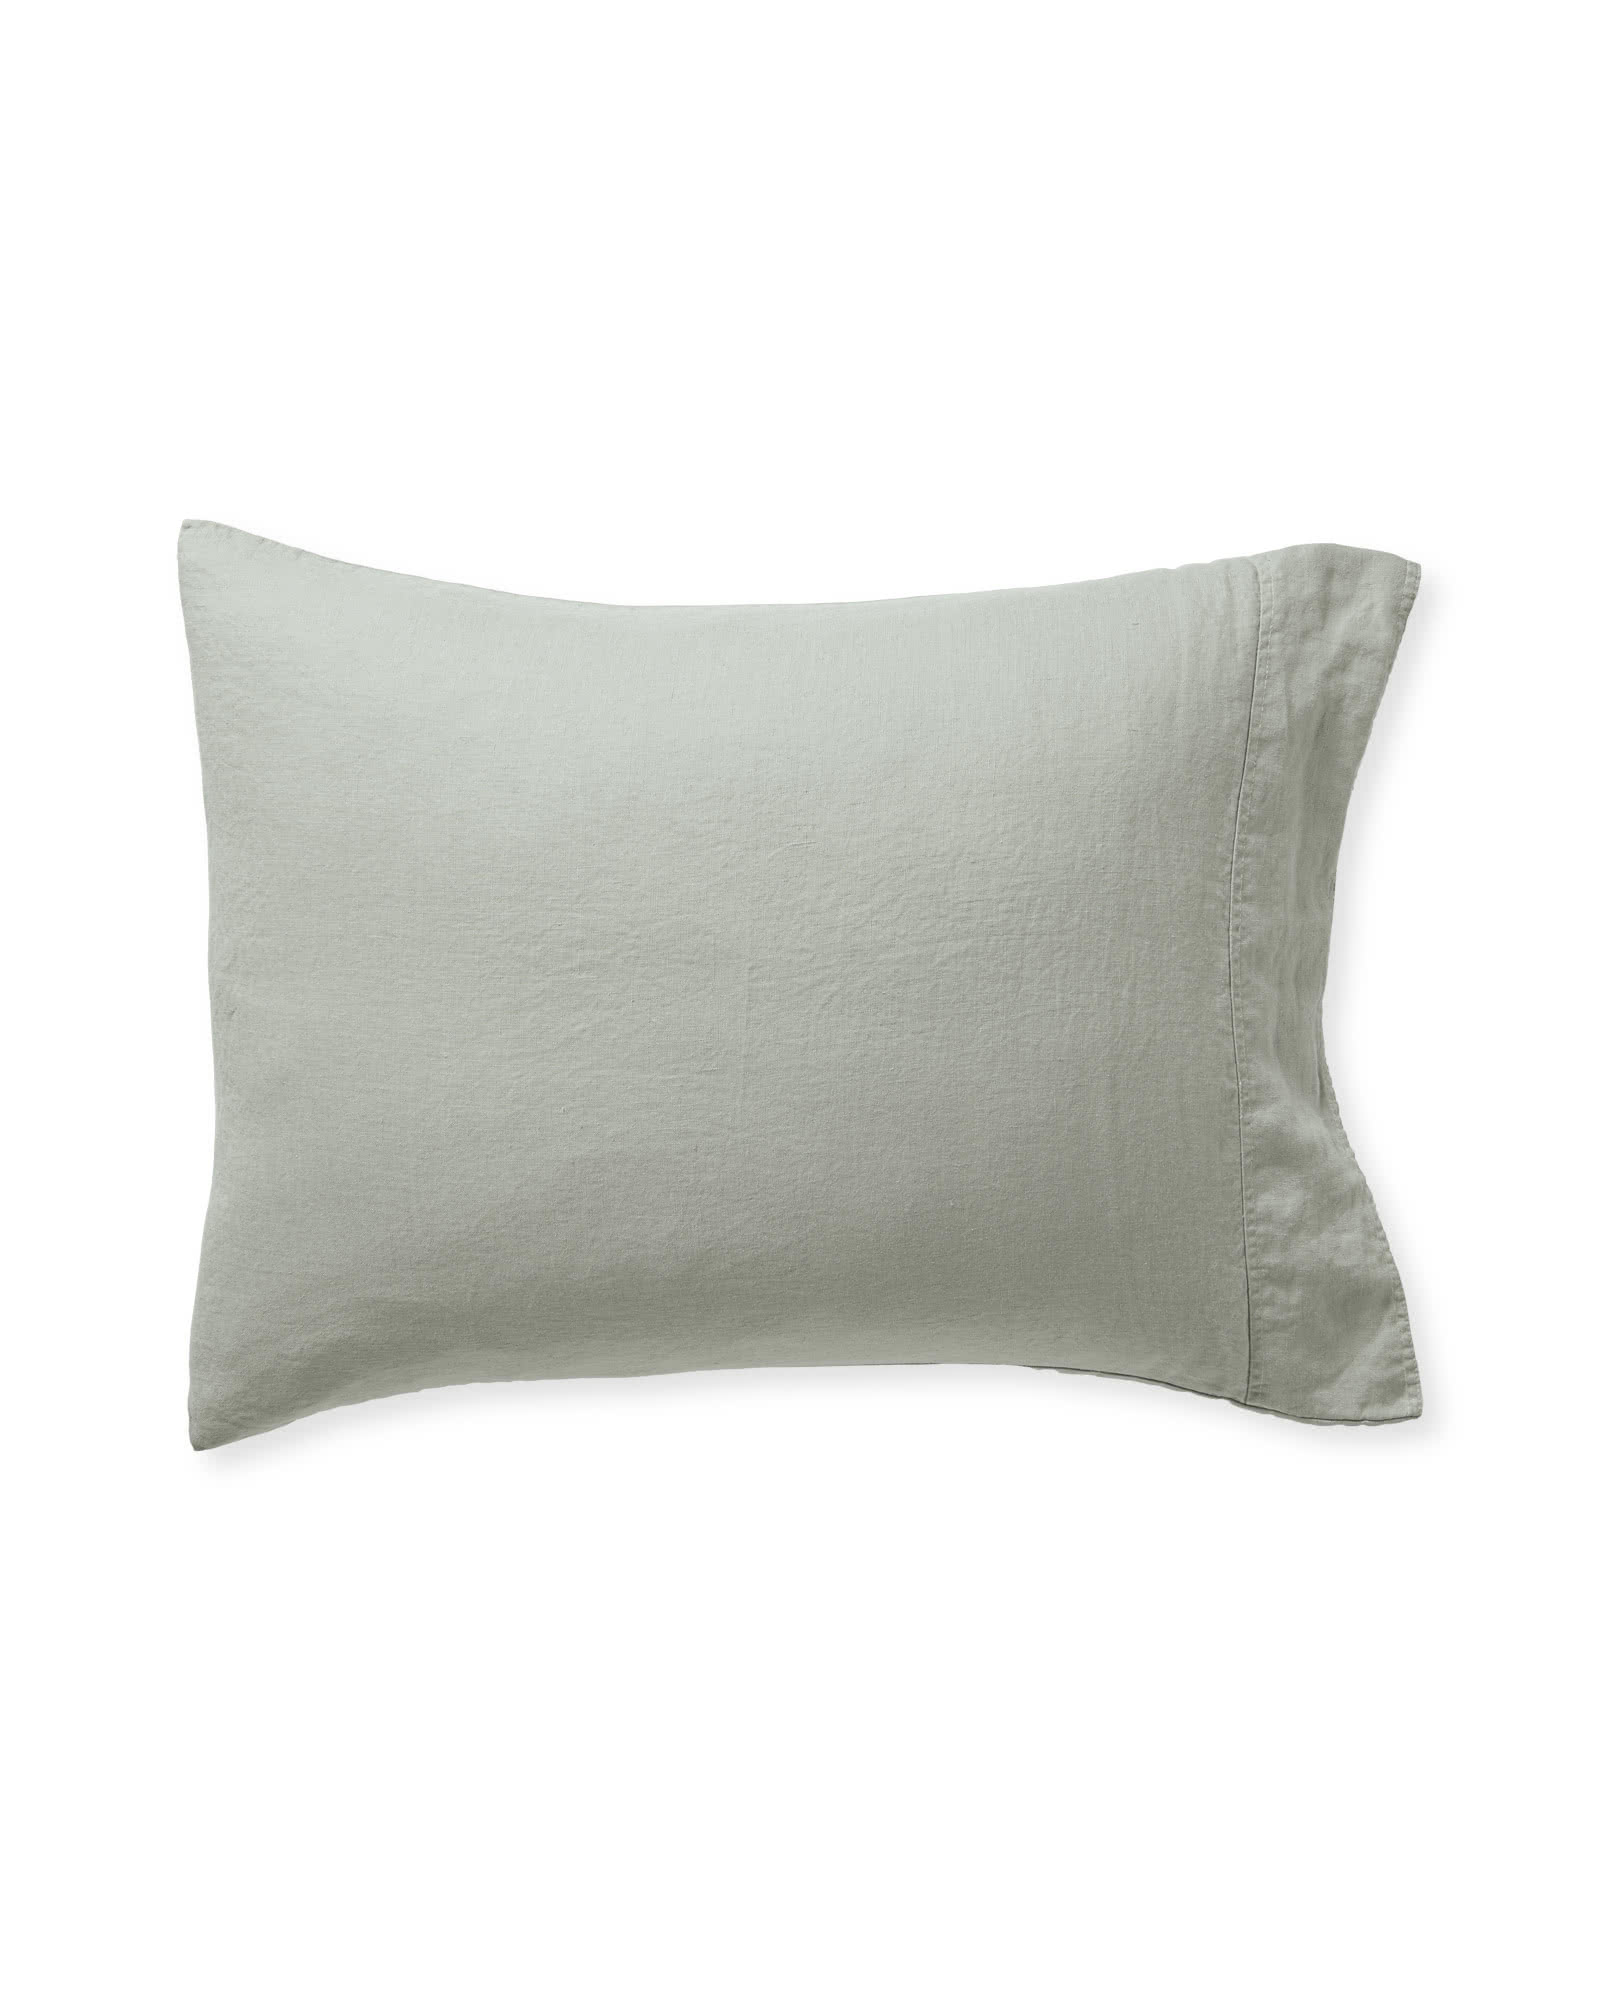 Positano Linen Pillowcases (Extra Set of 2), Eucalyptus